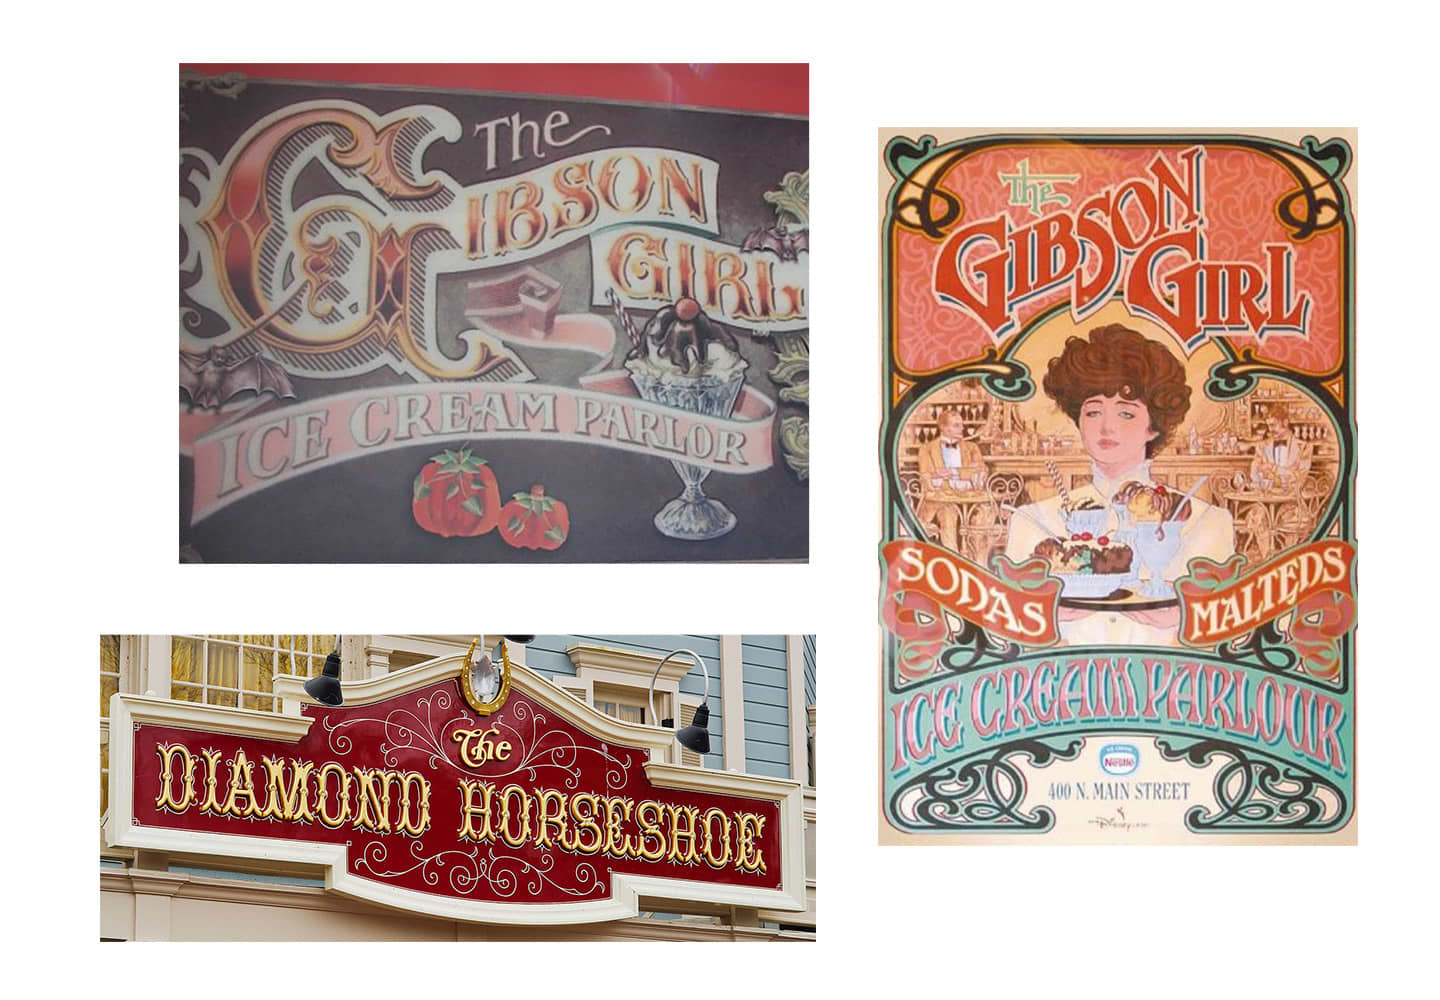 Ice Cream Parlor Hand-Painted Sign